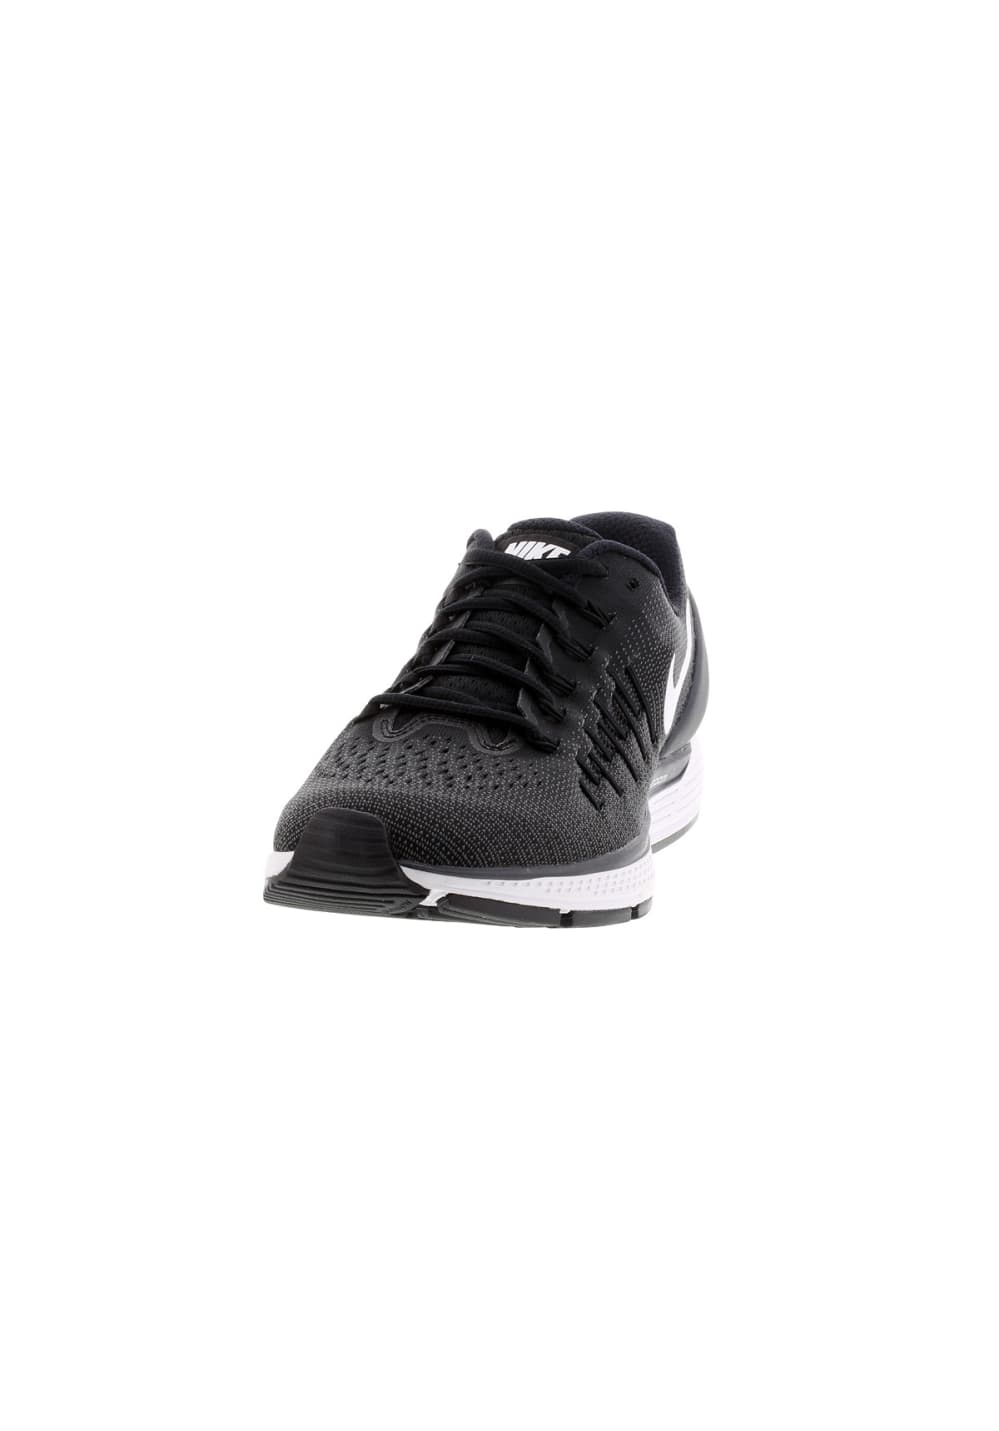 Nike Air Zoom Odyssey 2 Chaussures running pour Homme Noir